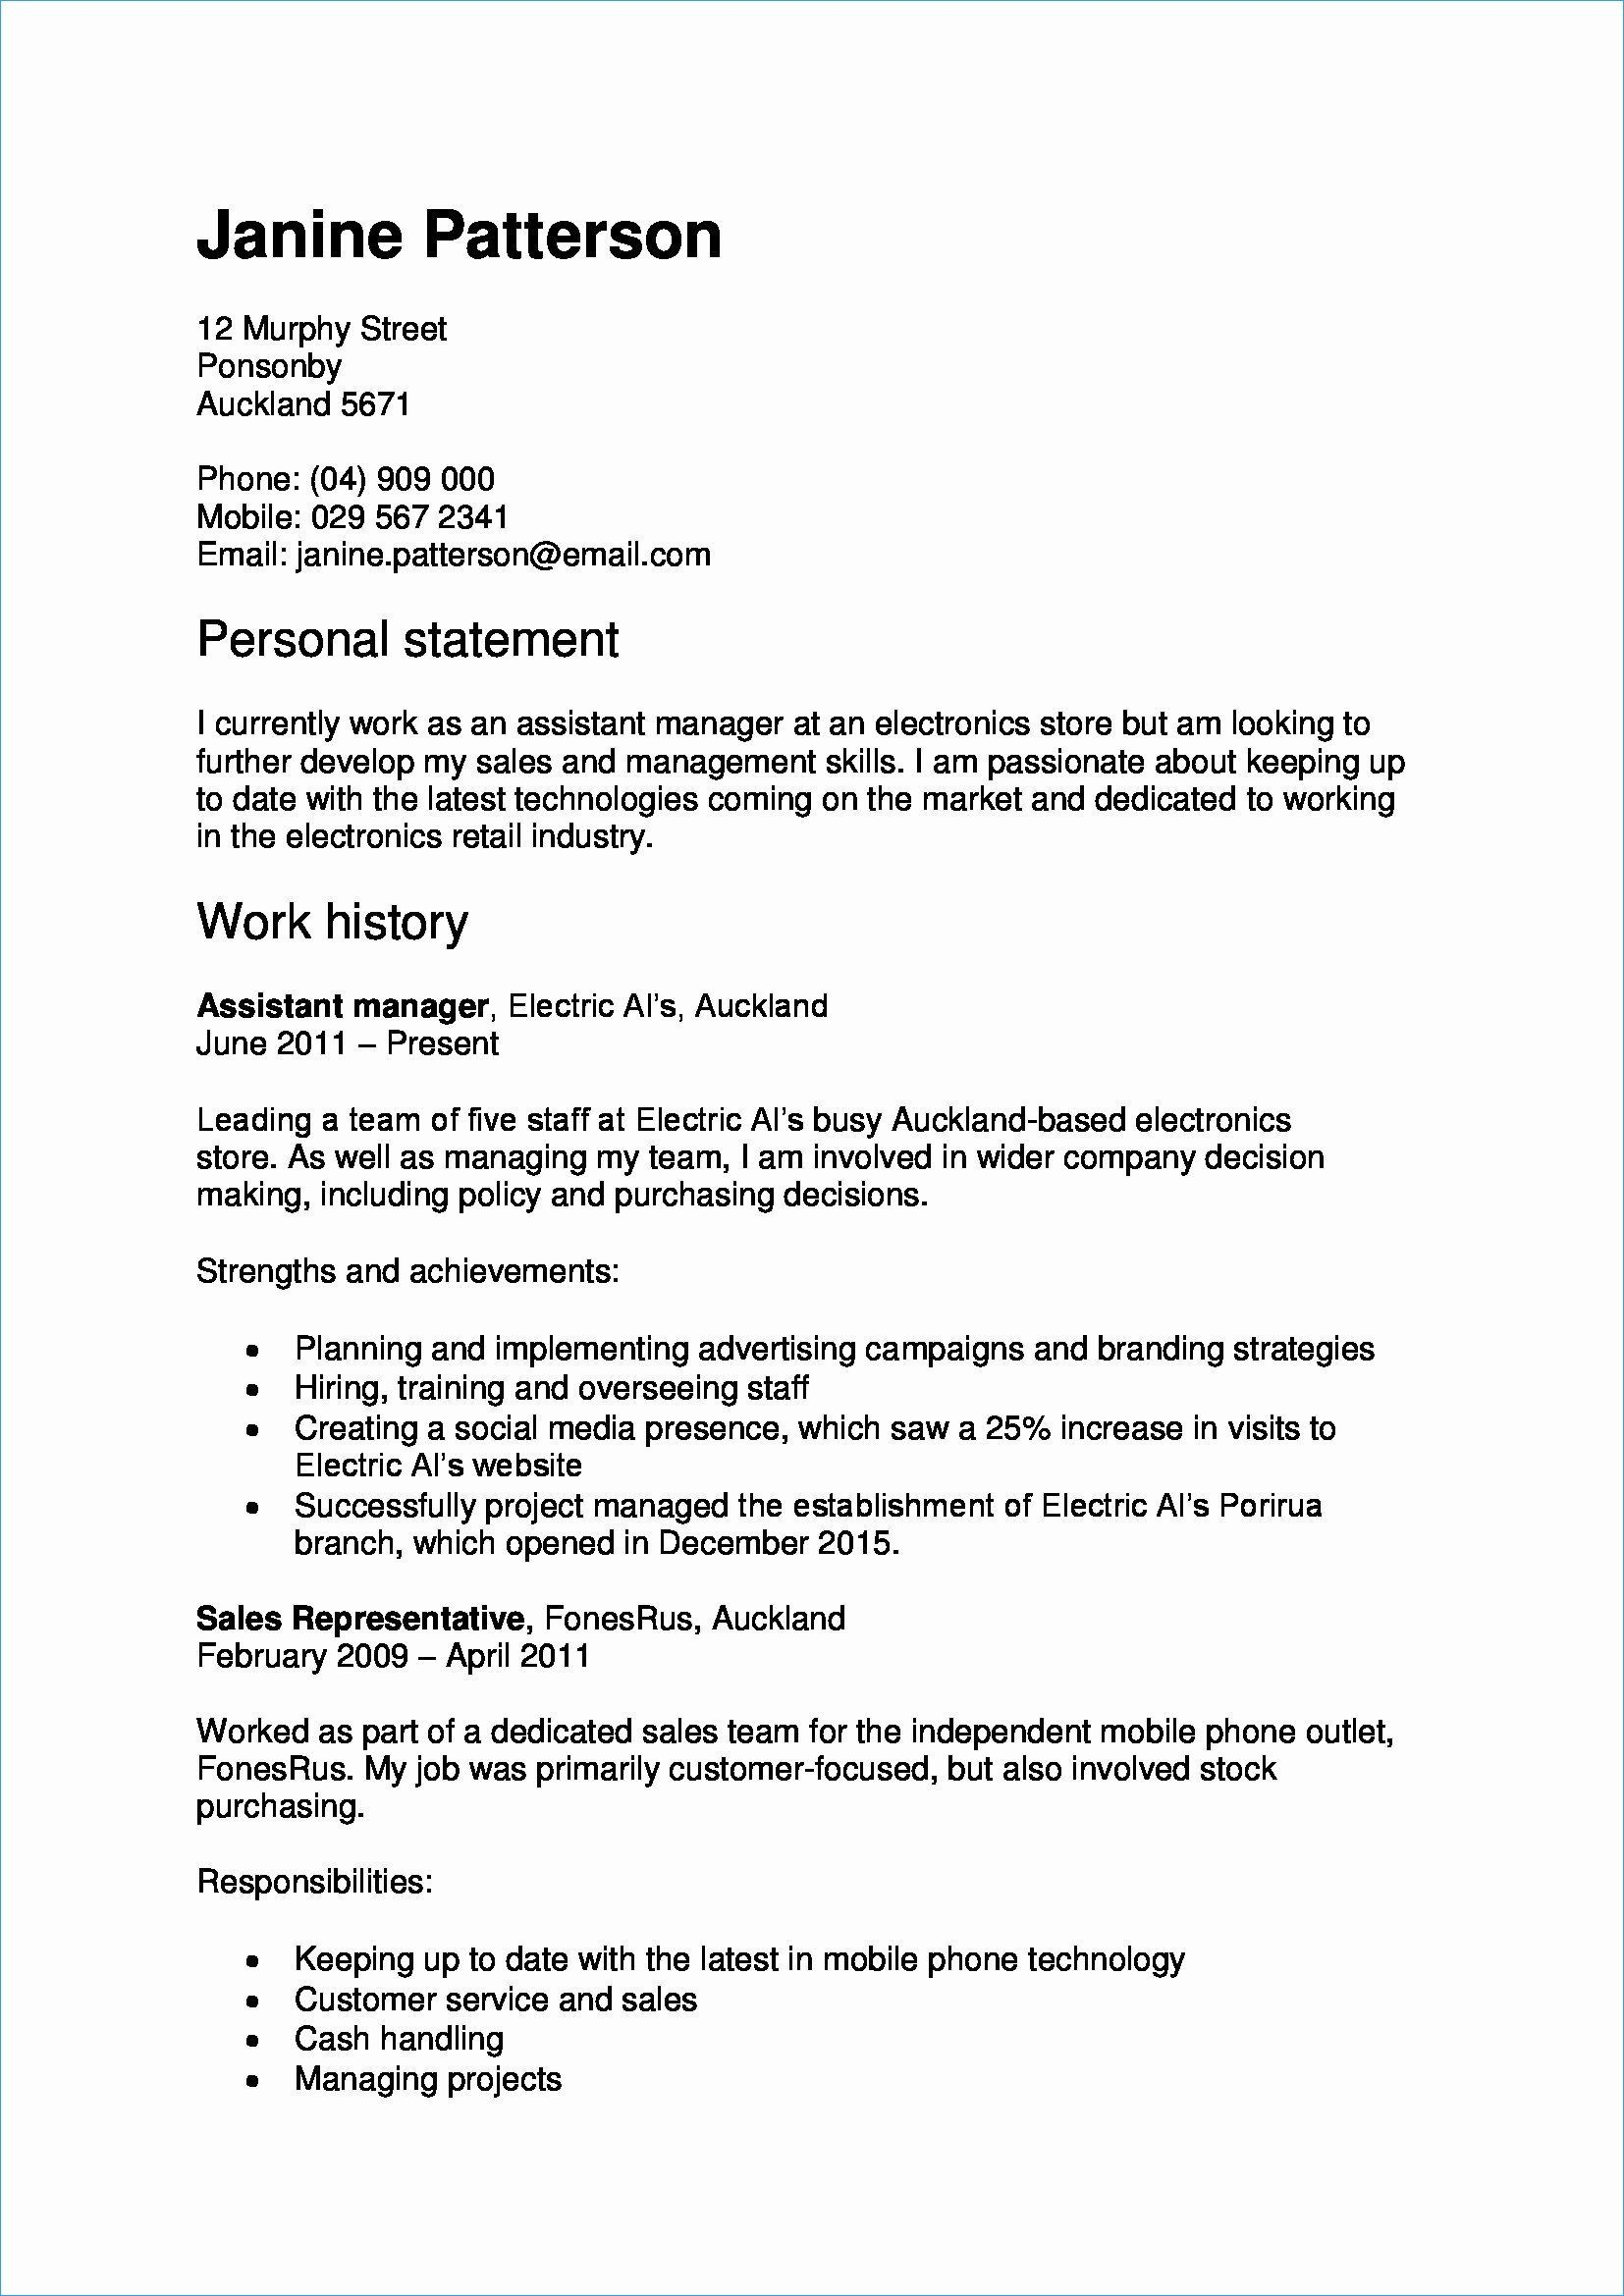 Social Work Skill Resume Luxury New Sale Assistant Example Teaching Profile Skills Personal Statement For Public Policy